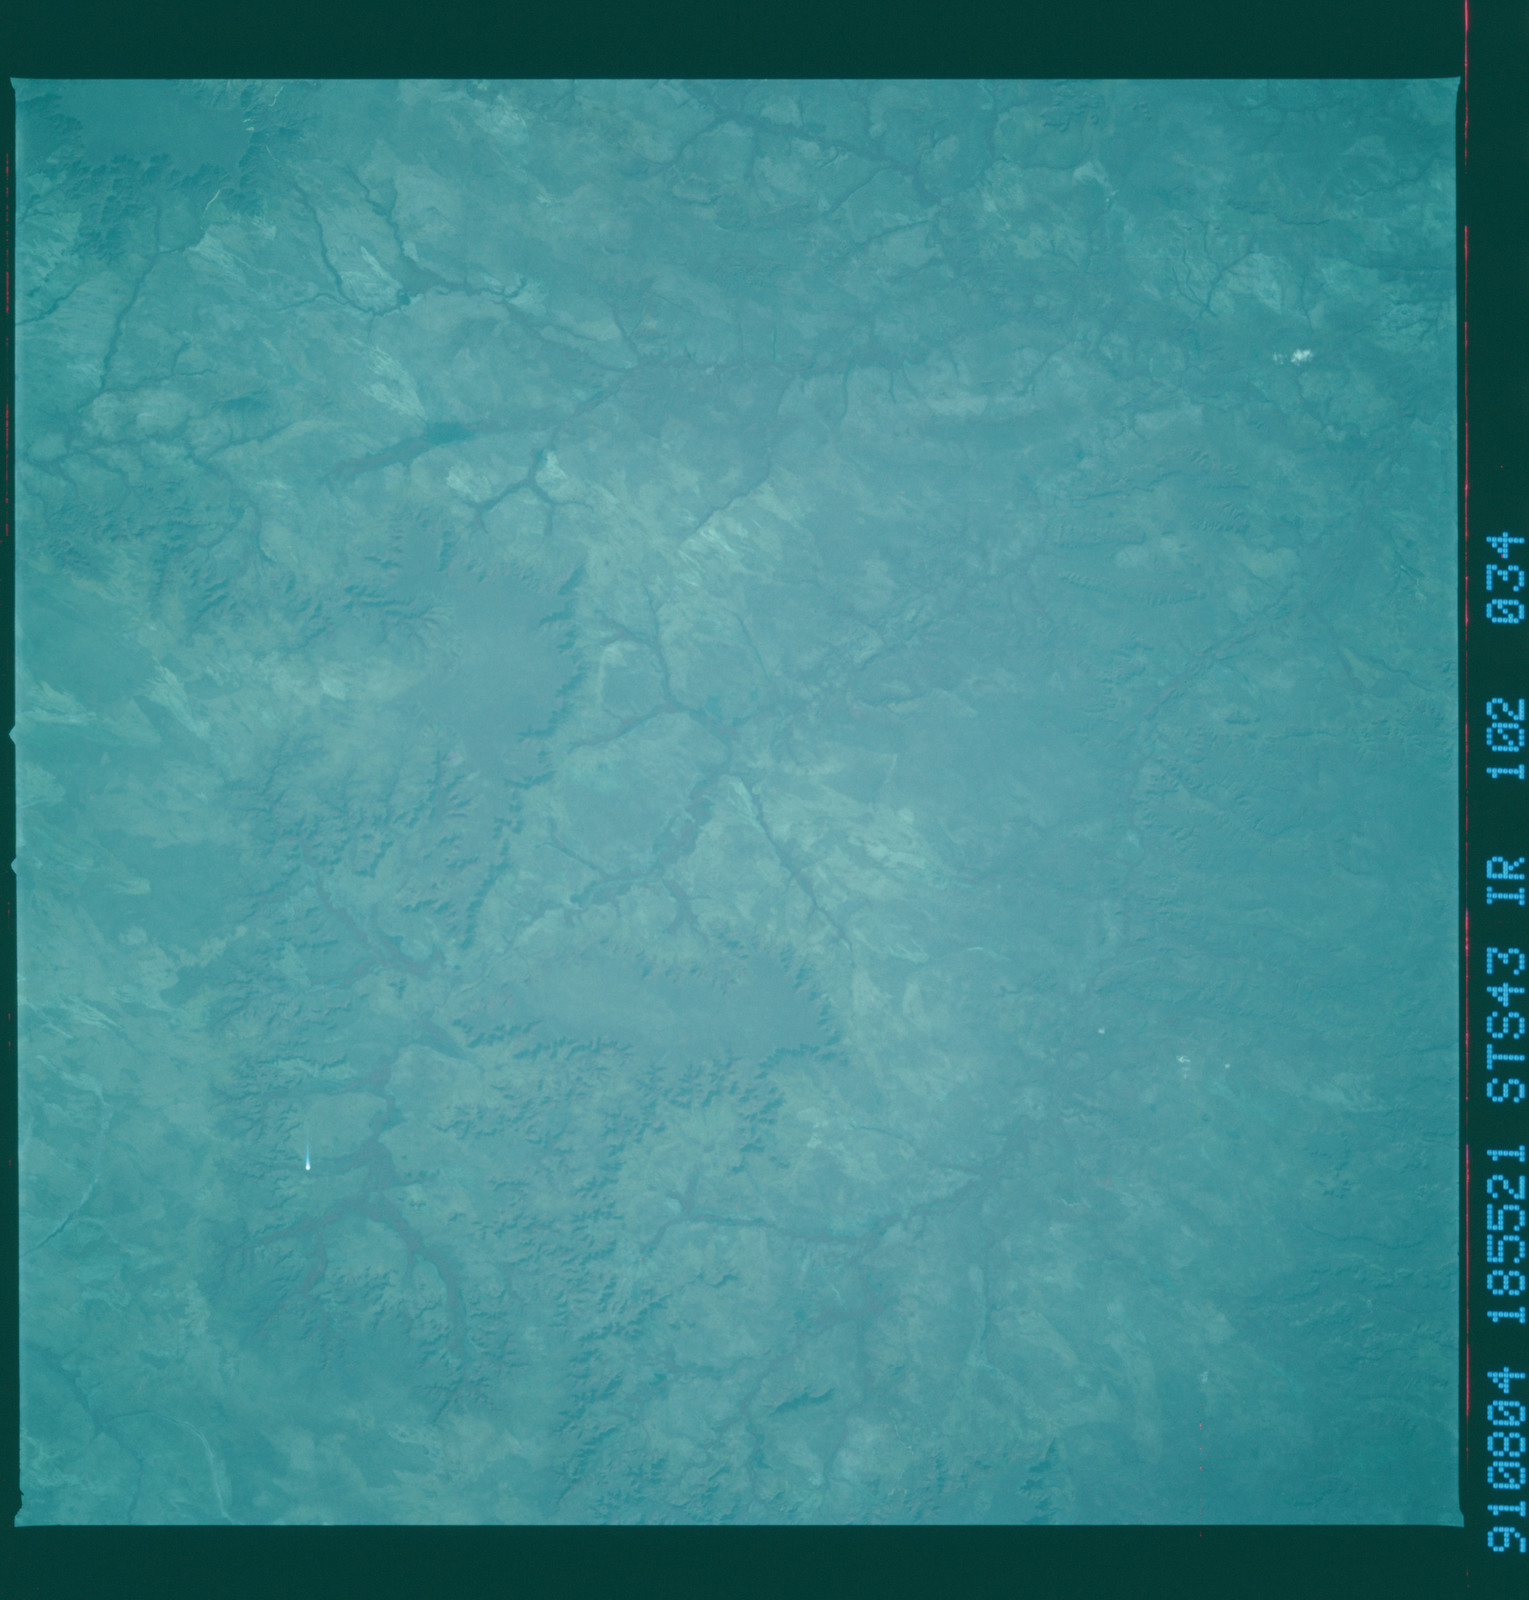 S43-102-034 - STS-043 - STS-43 earth observations